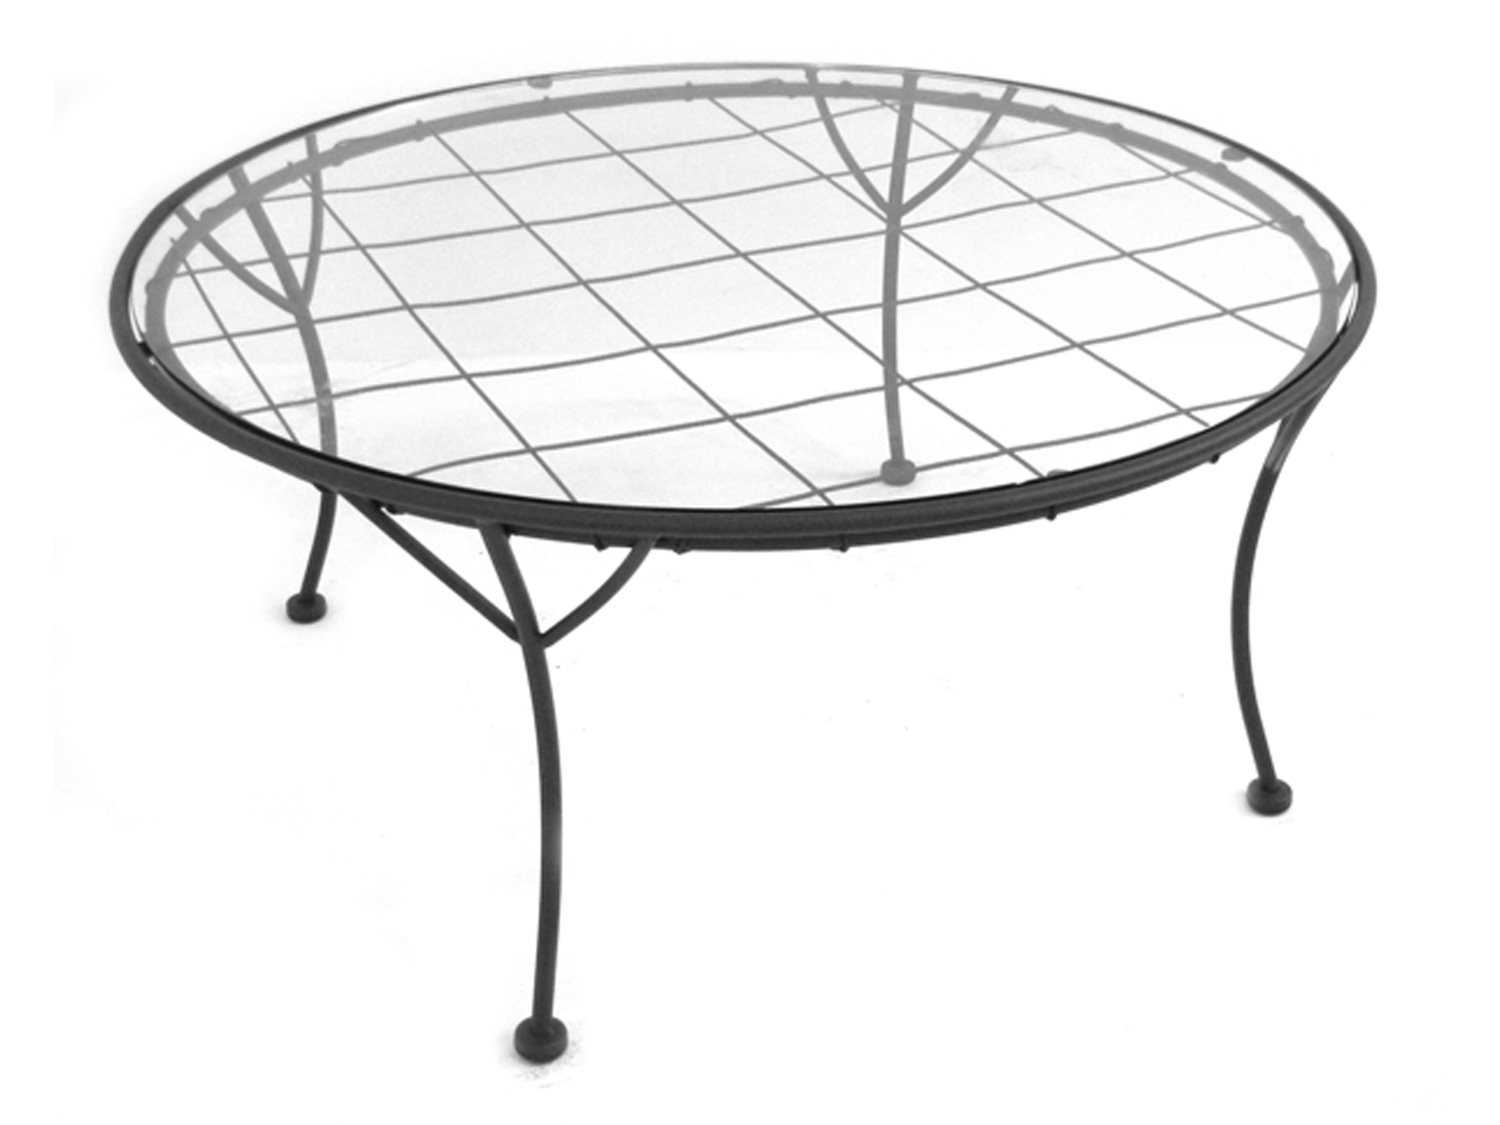 Meadowcraft Heritage Wrought Iron 36 Round Glass Top Chat